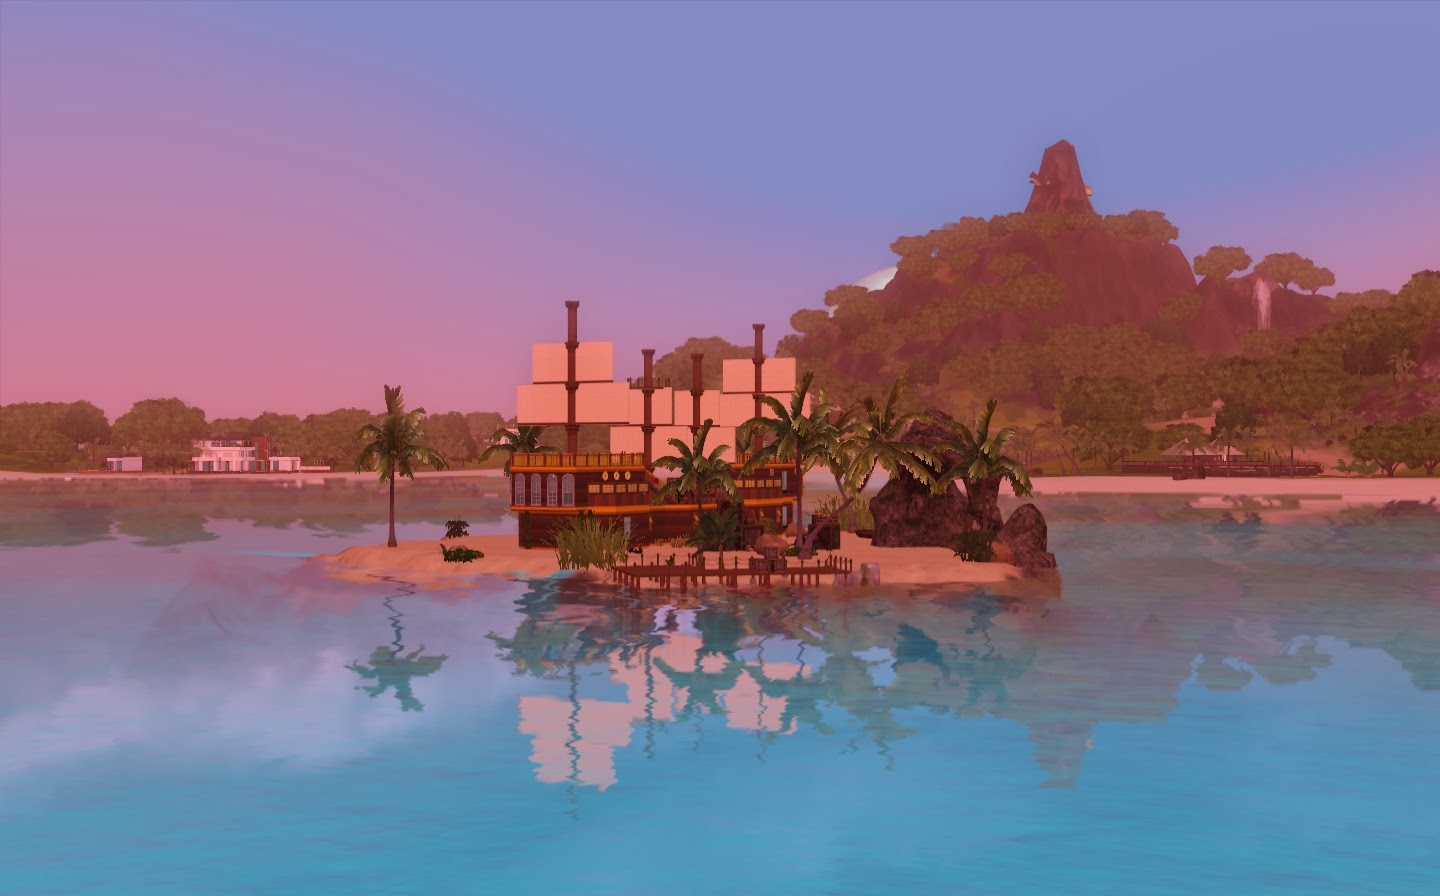 PirateResort%2B%25282%2529.jpg